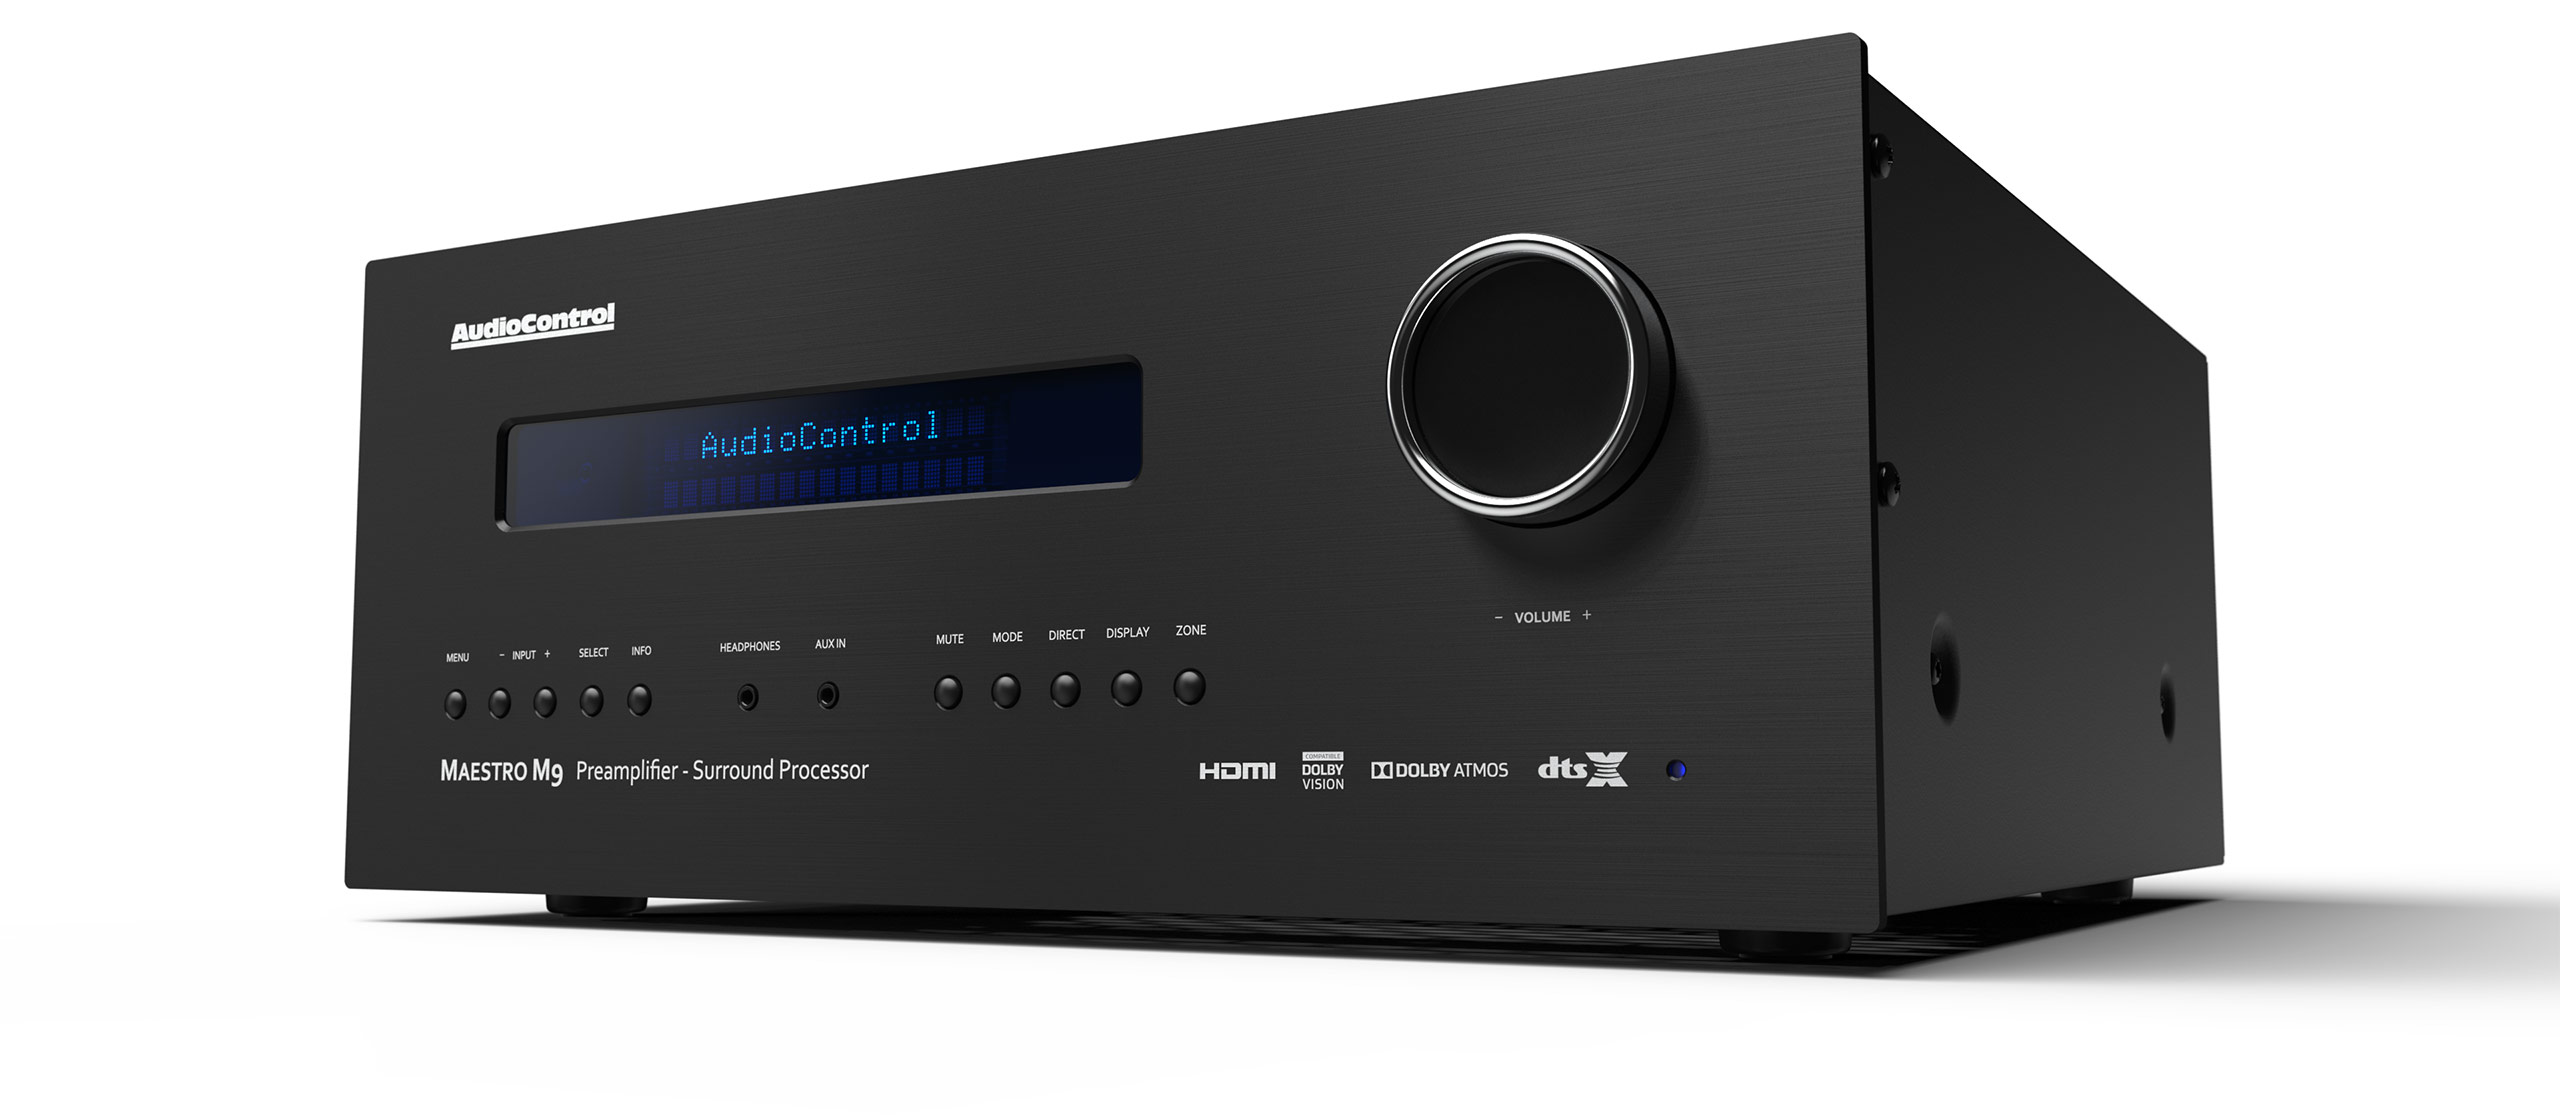 Maestro M9 Audiocontrol Video Processor With Automatic Cut Off Control 1